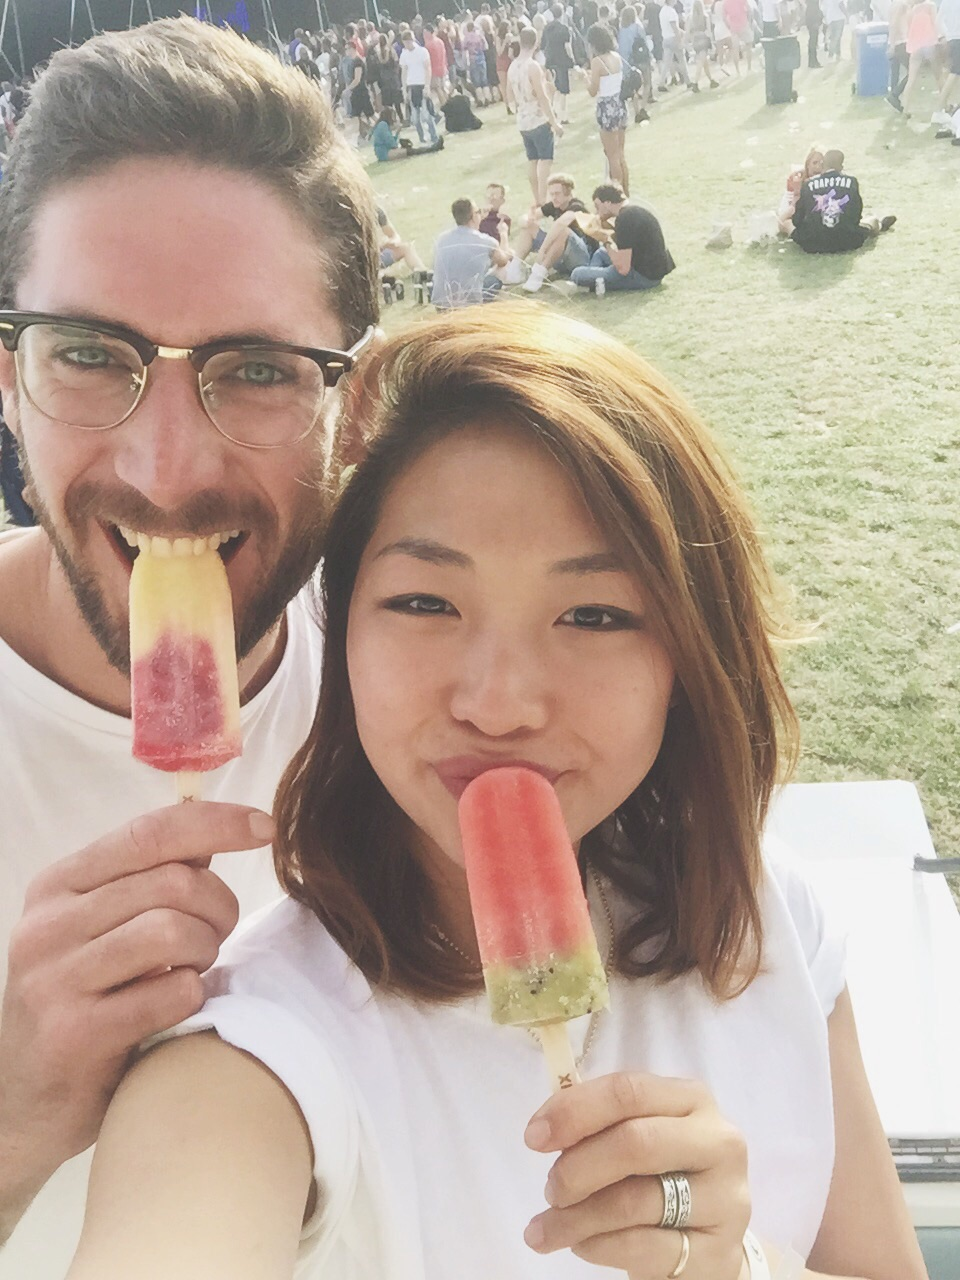 And of course eating some LICKALIXice lollies- mango/raspberry and watermelon/kiwi